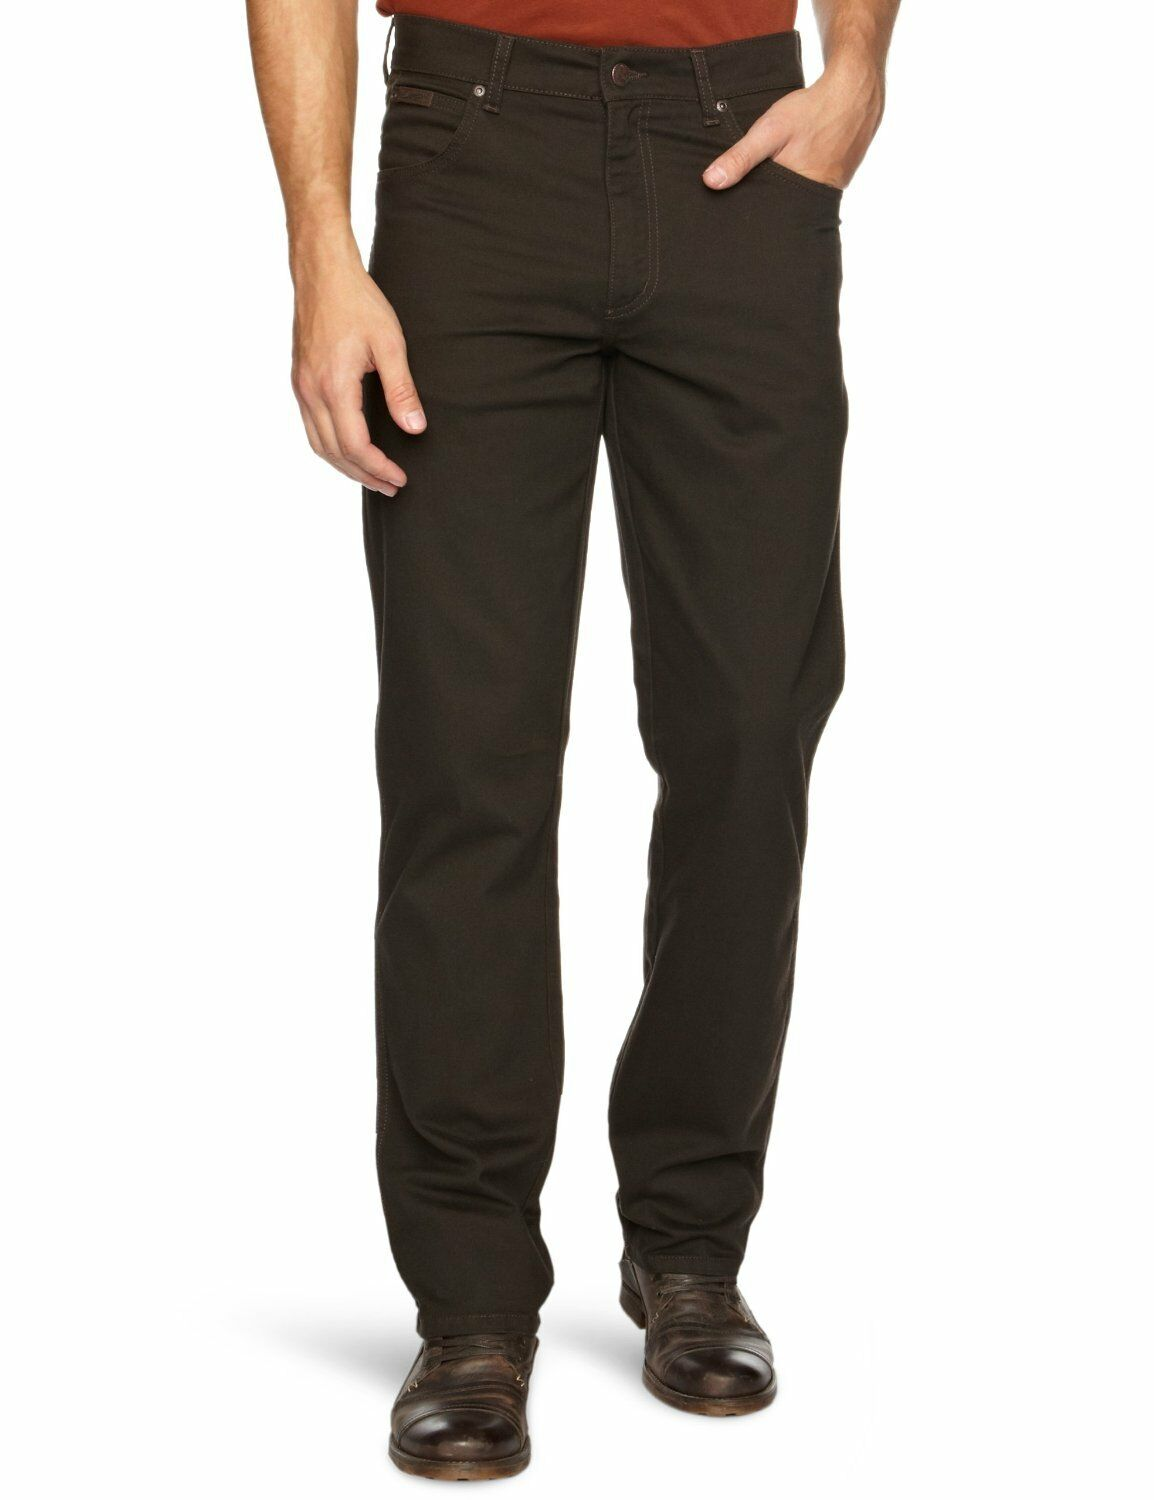 Wrangler Texas Stretch Jeans Mens Dark Brown Regular Fit Soft Fabric Trousers